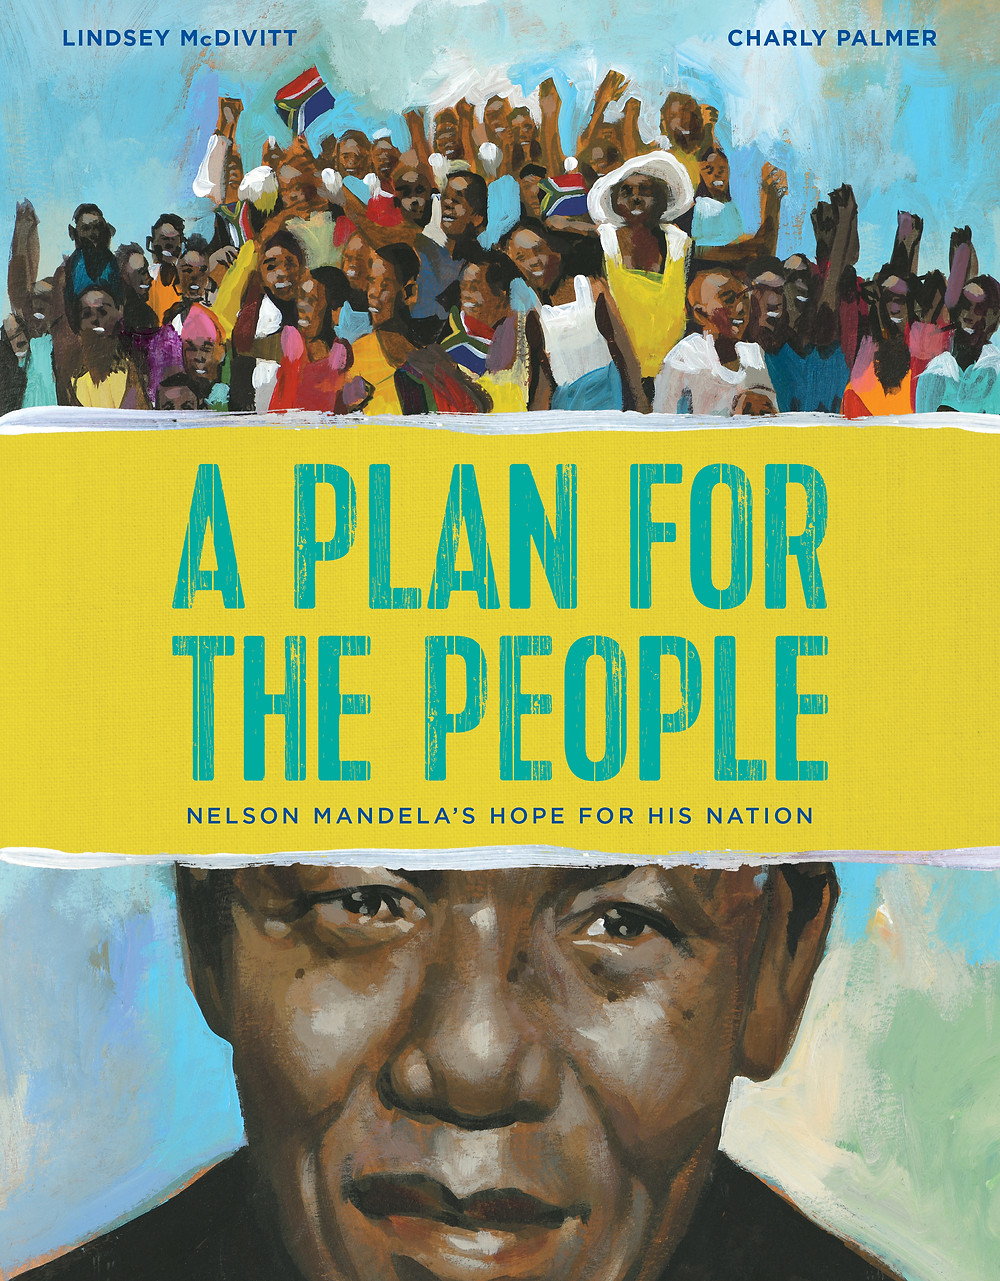 Nelson Mandela's Hope for His Nation by Lindsay McDivitt and Charly Palmer